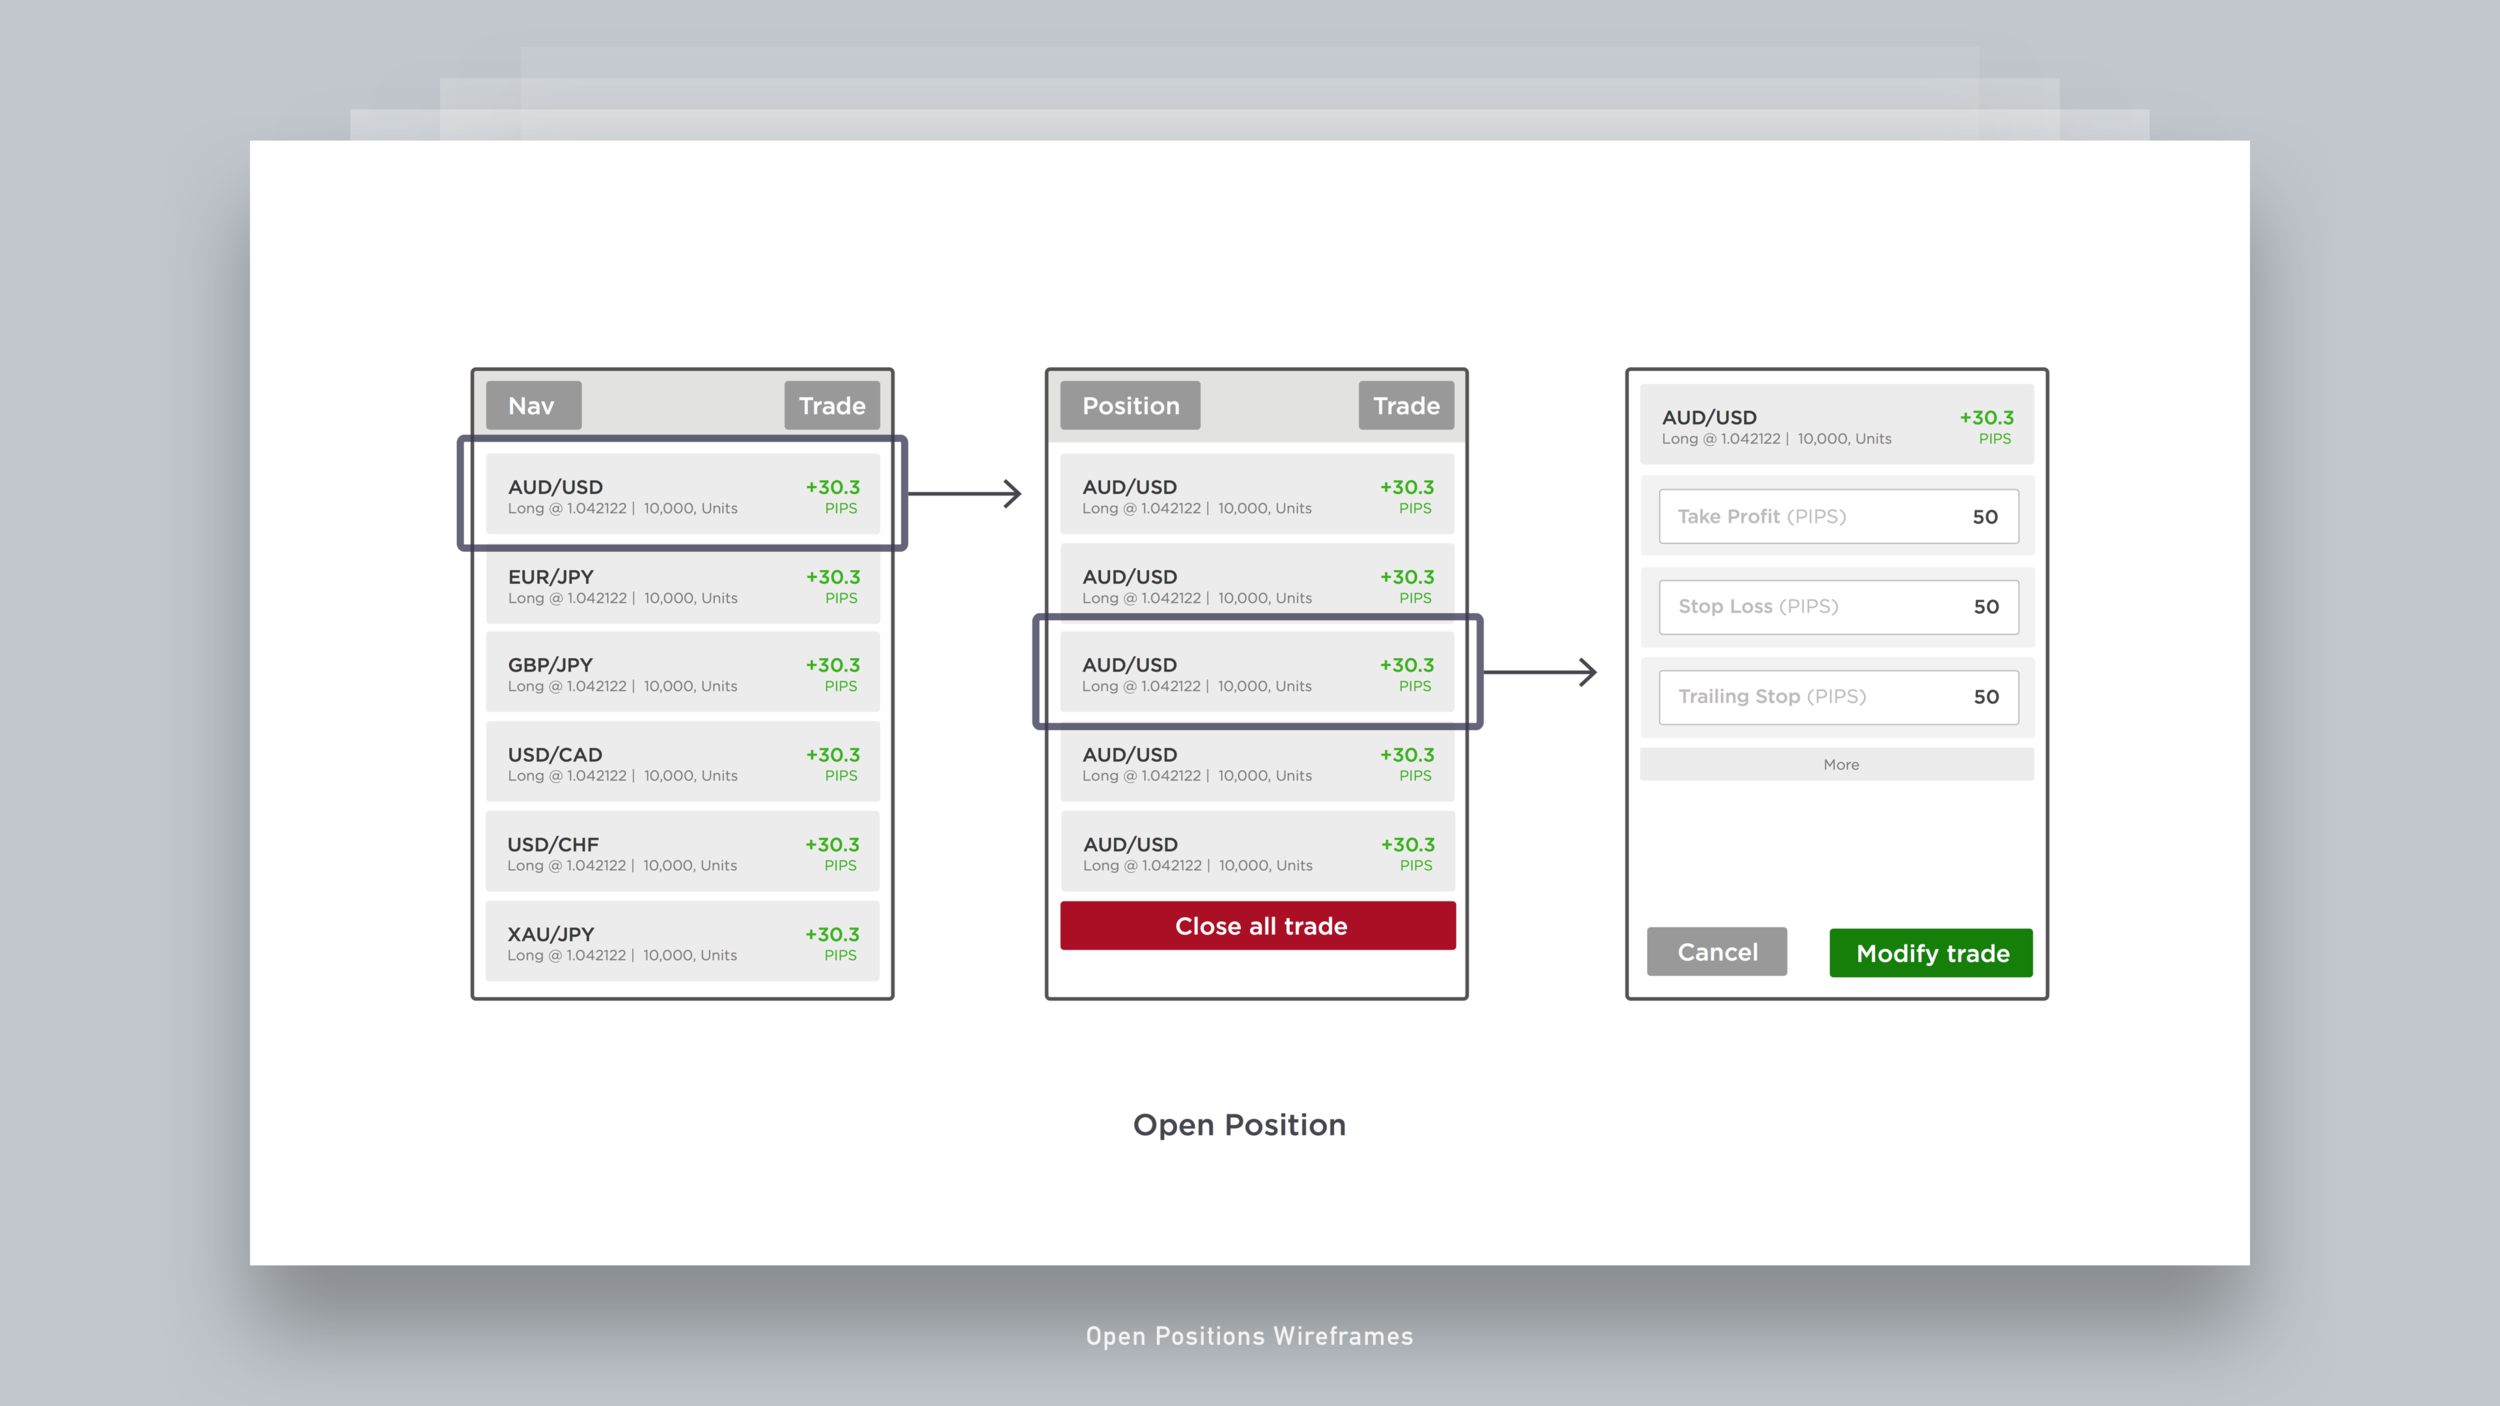 02 Open Positions Wireframes - Forex Trading Platform.png